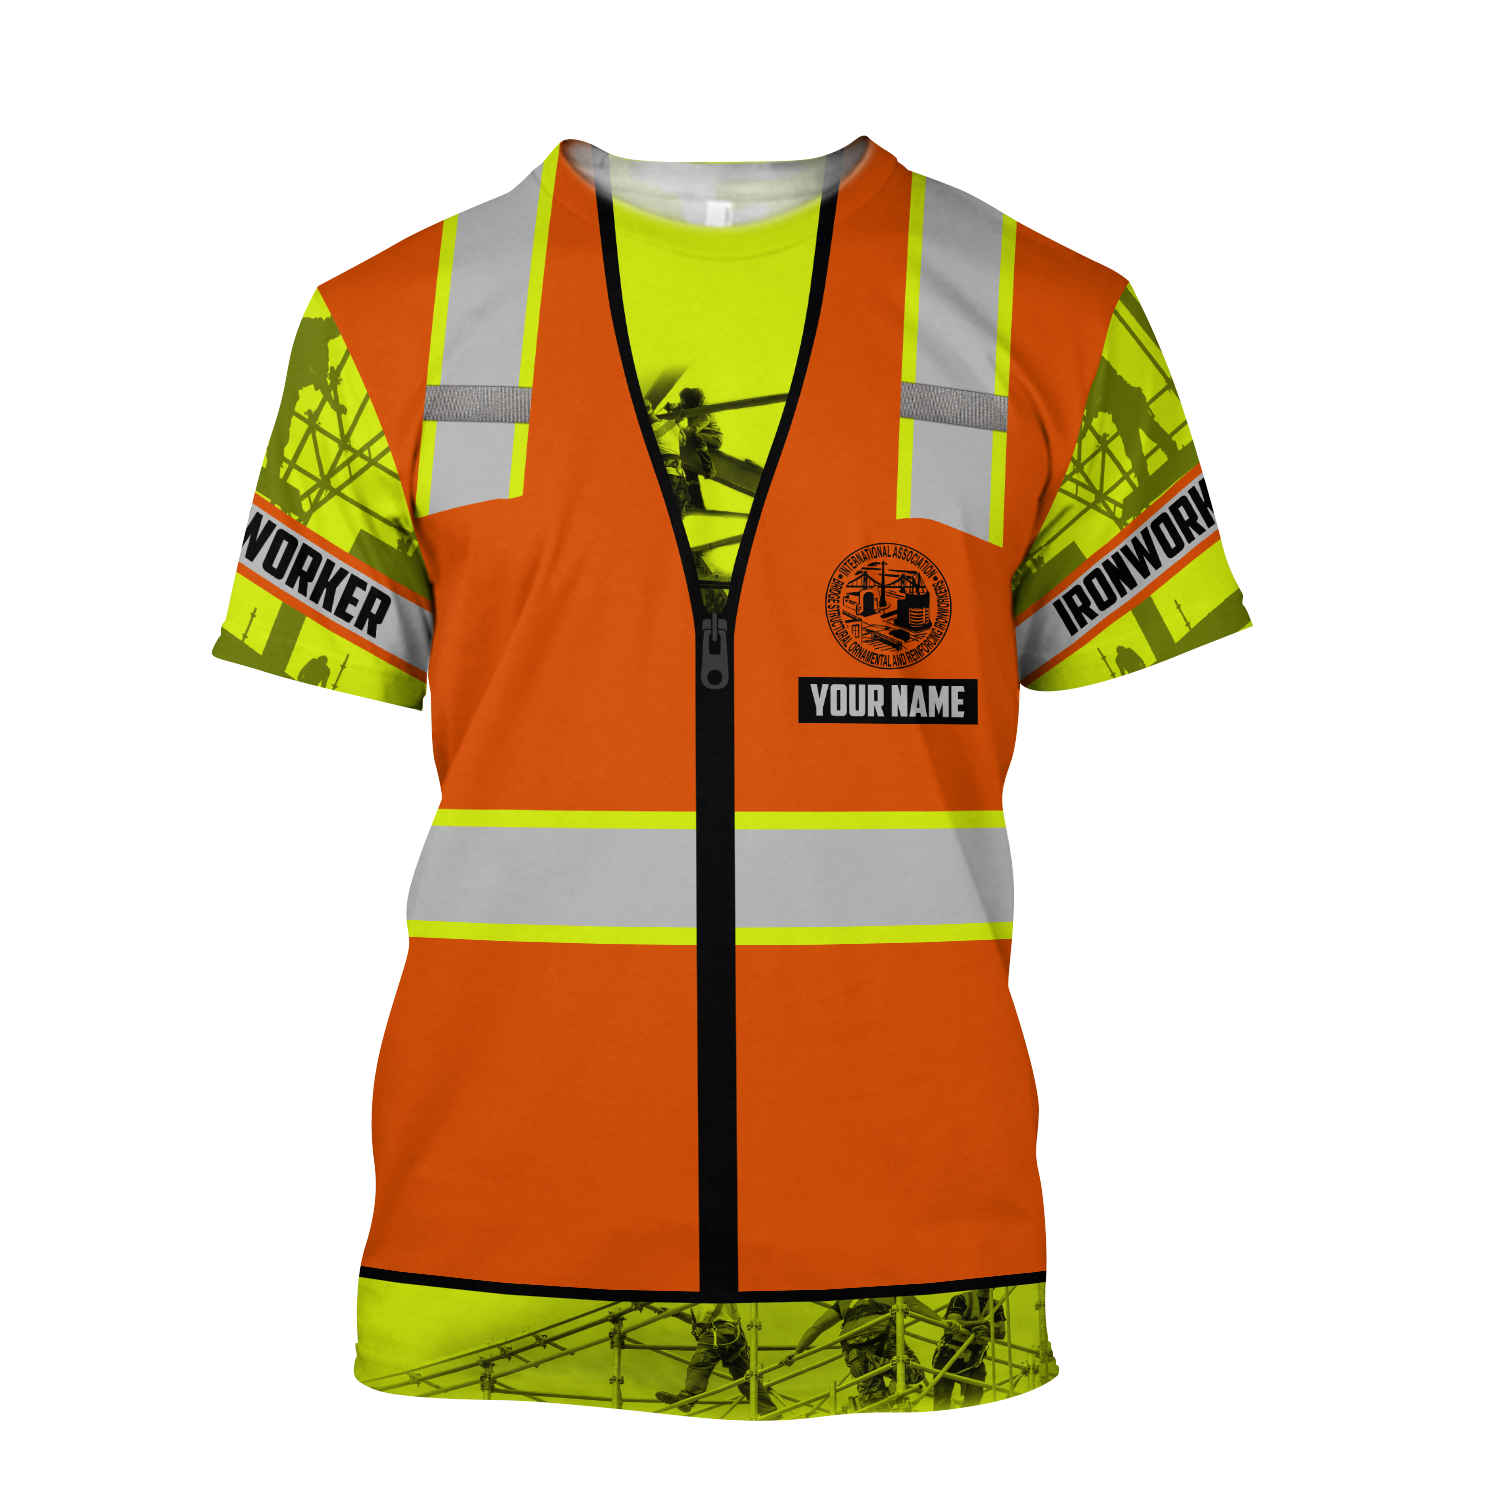 Personalized Ironworker Safety Just The Tip I Promise 3D Printed Unisex Shirts TN - T-shirt / 4XL